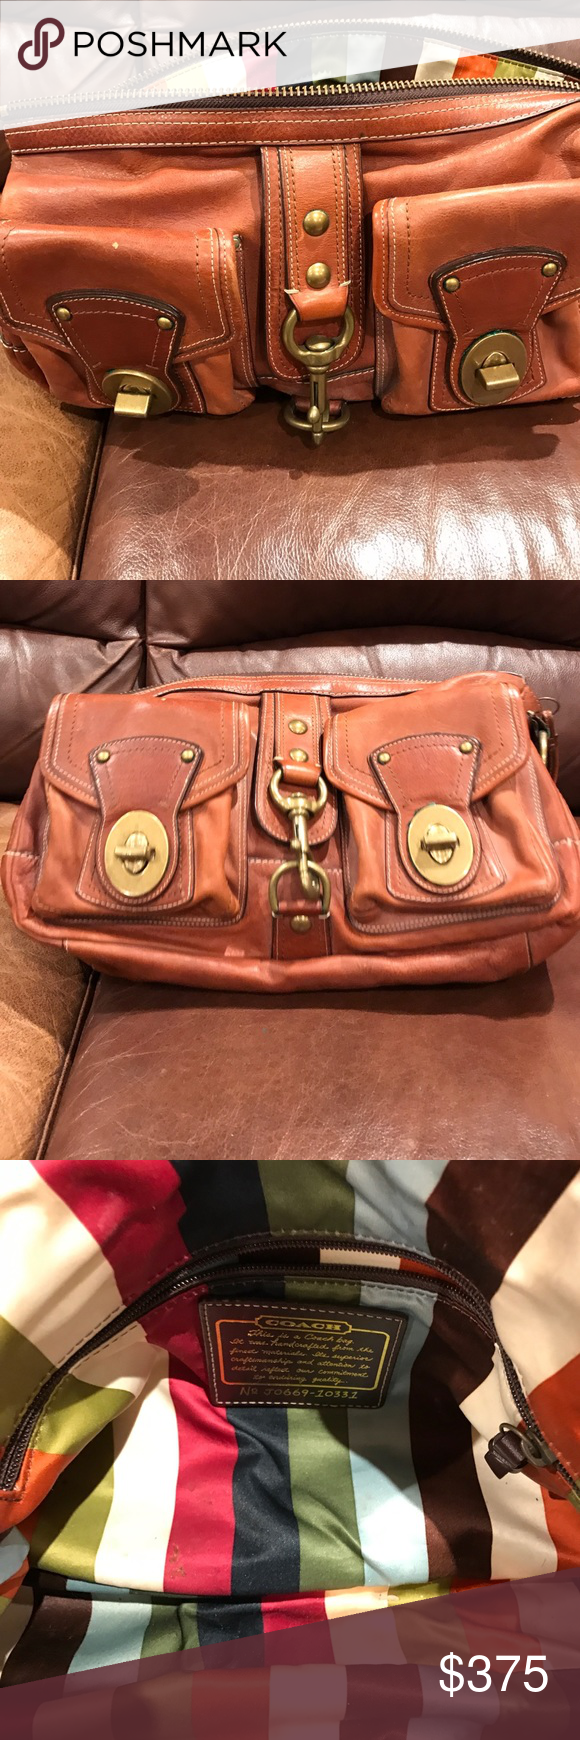 Nwot Authentic Coach Tote Handbag Style With Authenticity Number Available In The Pictures Pink